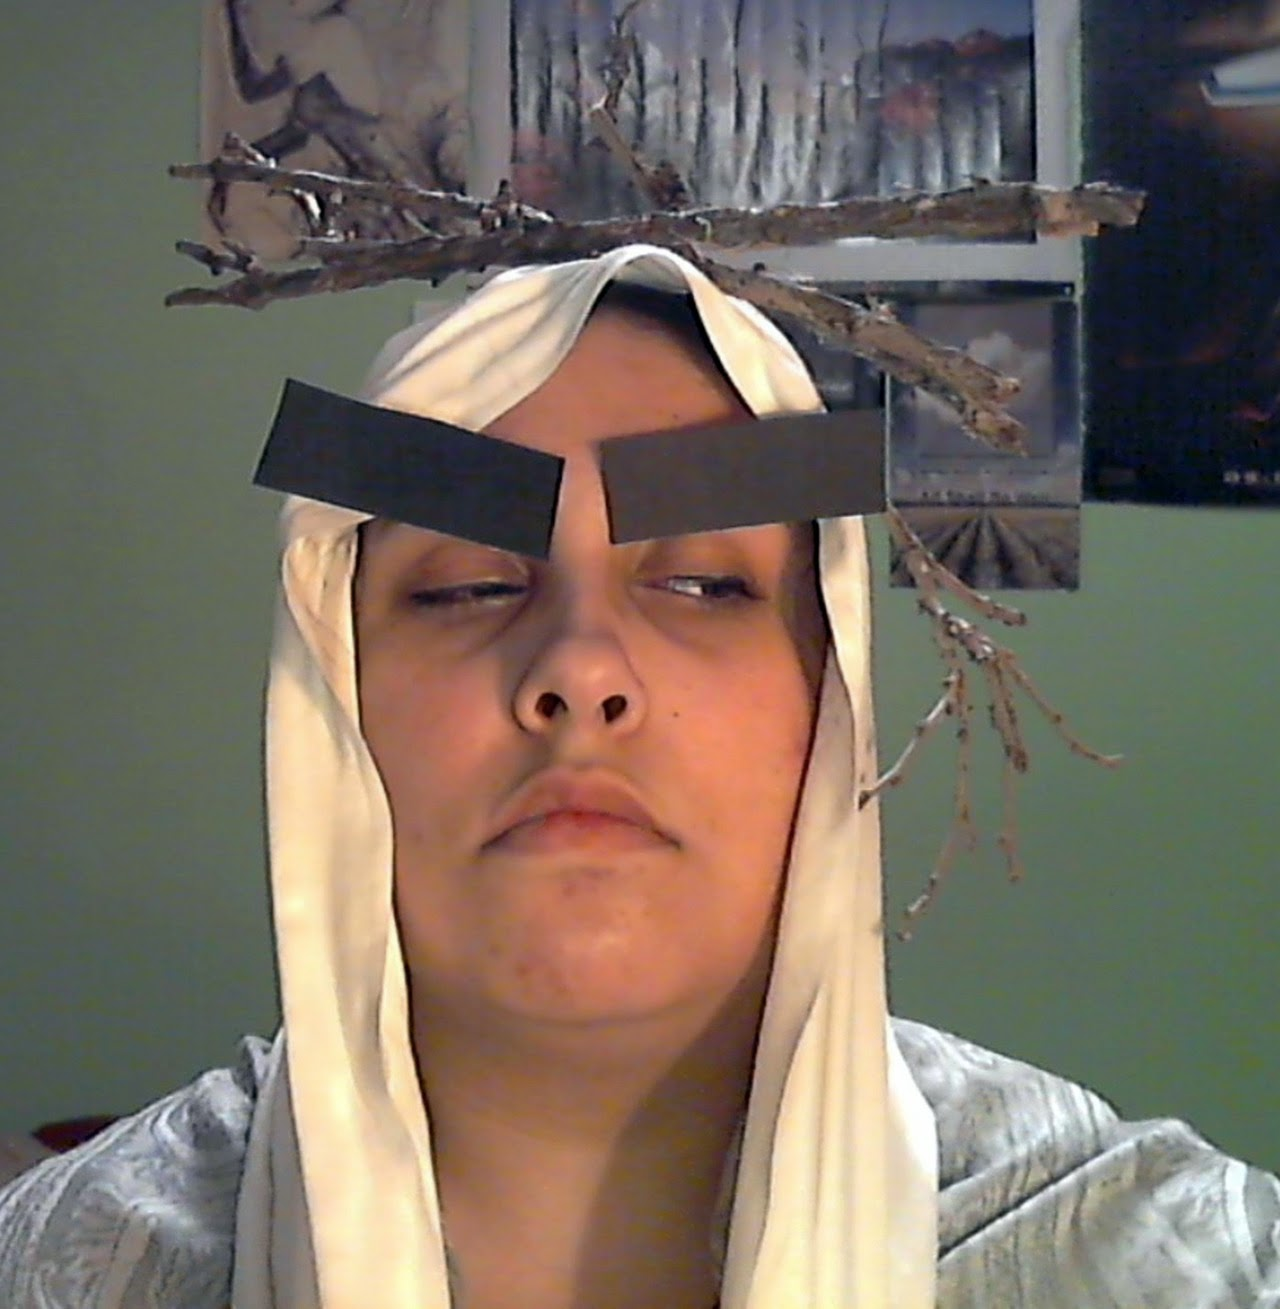 http://rebloggy.com/post/lotr-my-face-thranduil/71368974101